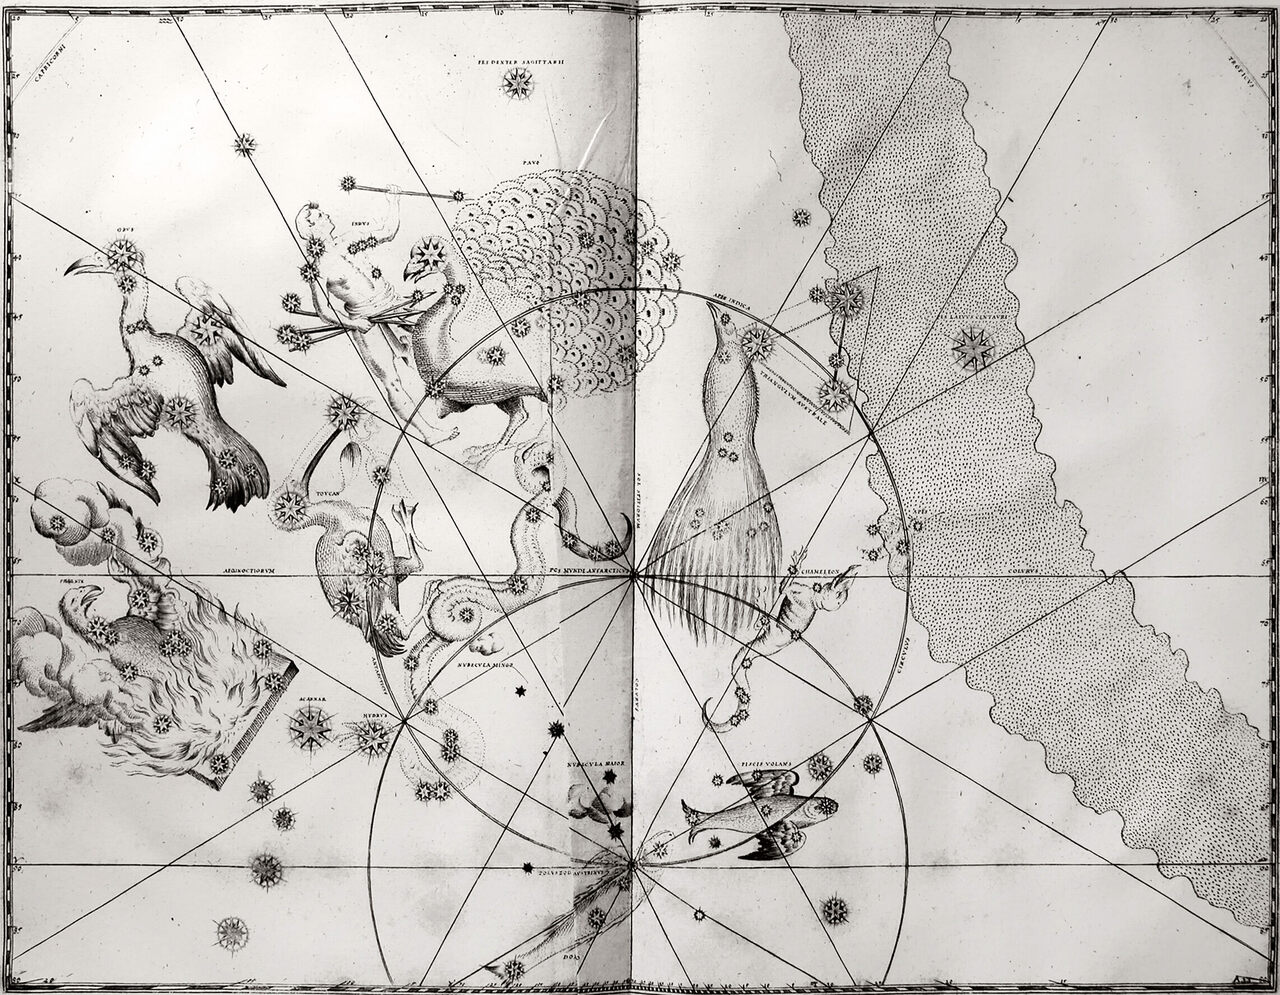 Chart 49. A print of the copperplate engraving of Johann Bayer's 1661 edition of <em>Uranometria</em>, which depicts 12 new constellations.